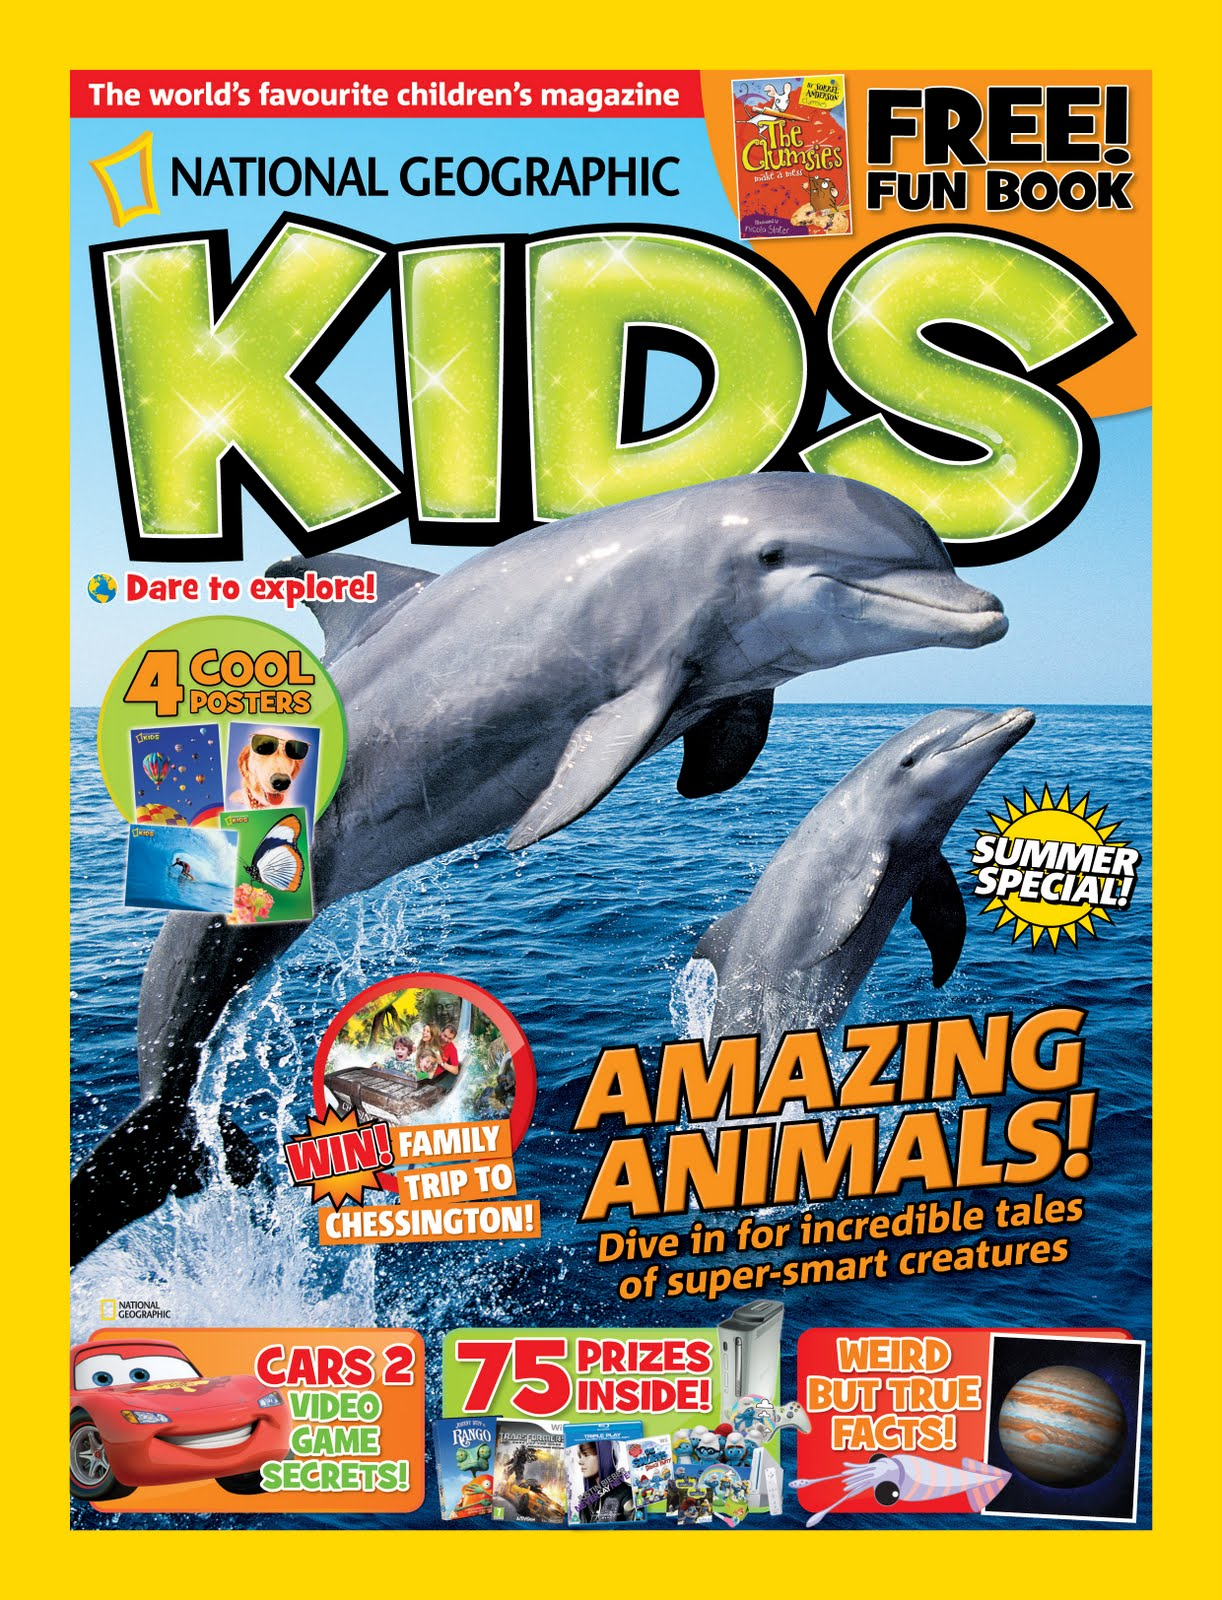 Free magazines by mail for kids